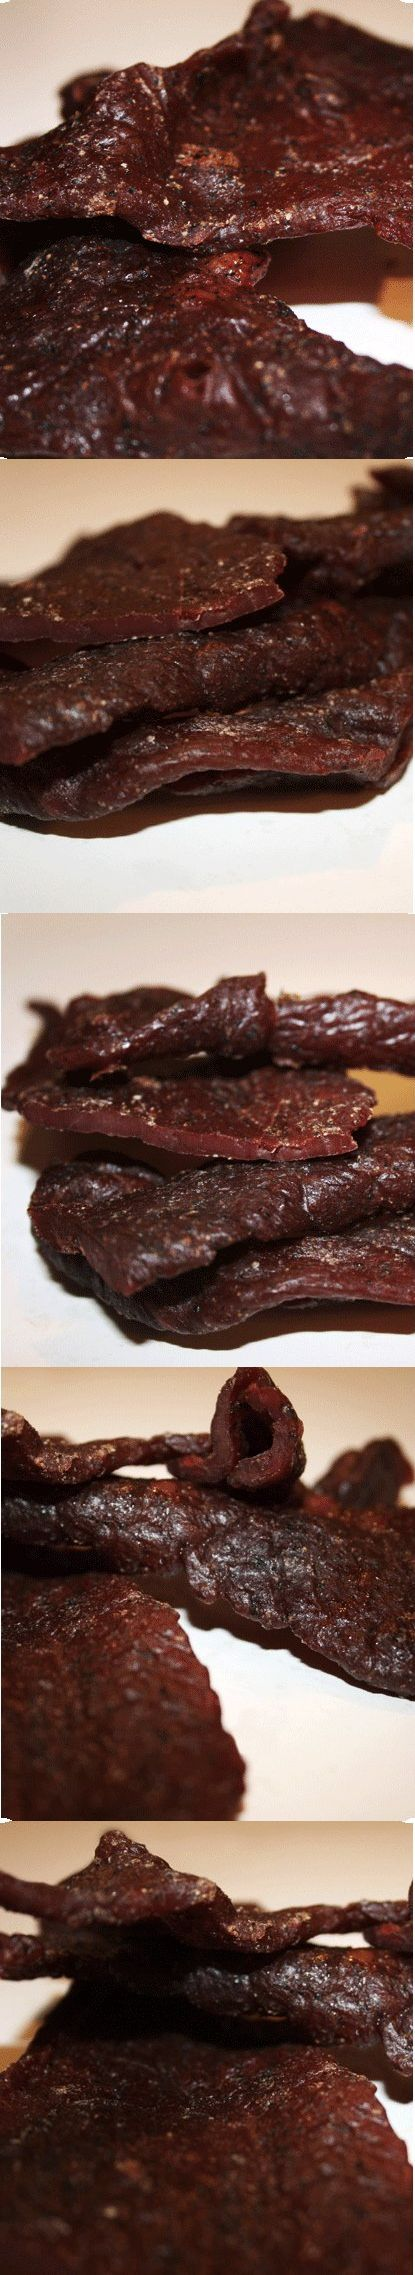 Bulk Beef Jerky's Sweet-N-Hot Beef Jerky - 1 Lb, Bulk Beef Jerky's Sweet-N-Hot Beef Jerky is a wonderful combination of brown sugar and spices. Bulk Beef Jerky's Sweet-N-Hot Beef Jerky is available in our 4oz bags as well. The resealable jar makes i..., #Grocery, #Jerky & Dried Meats, $24.54